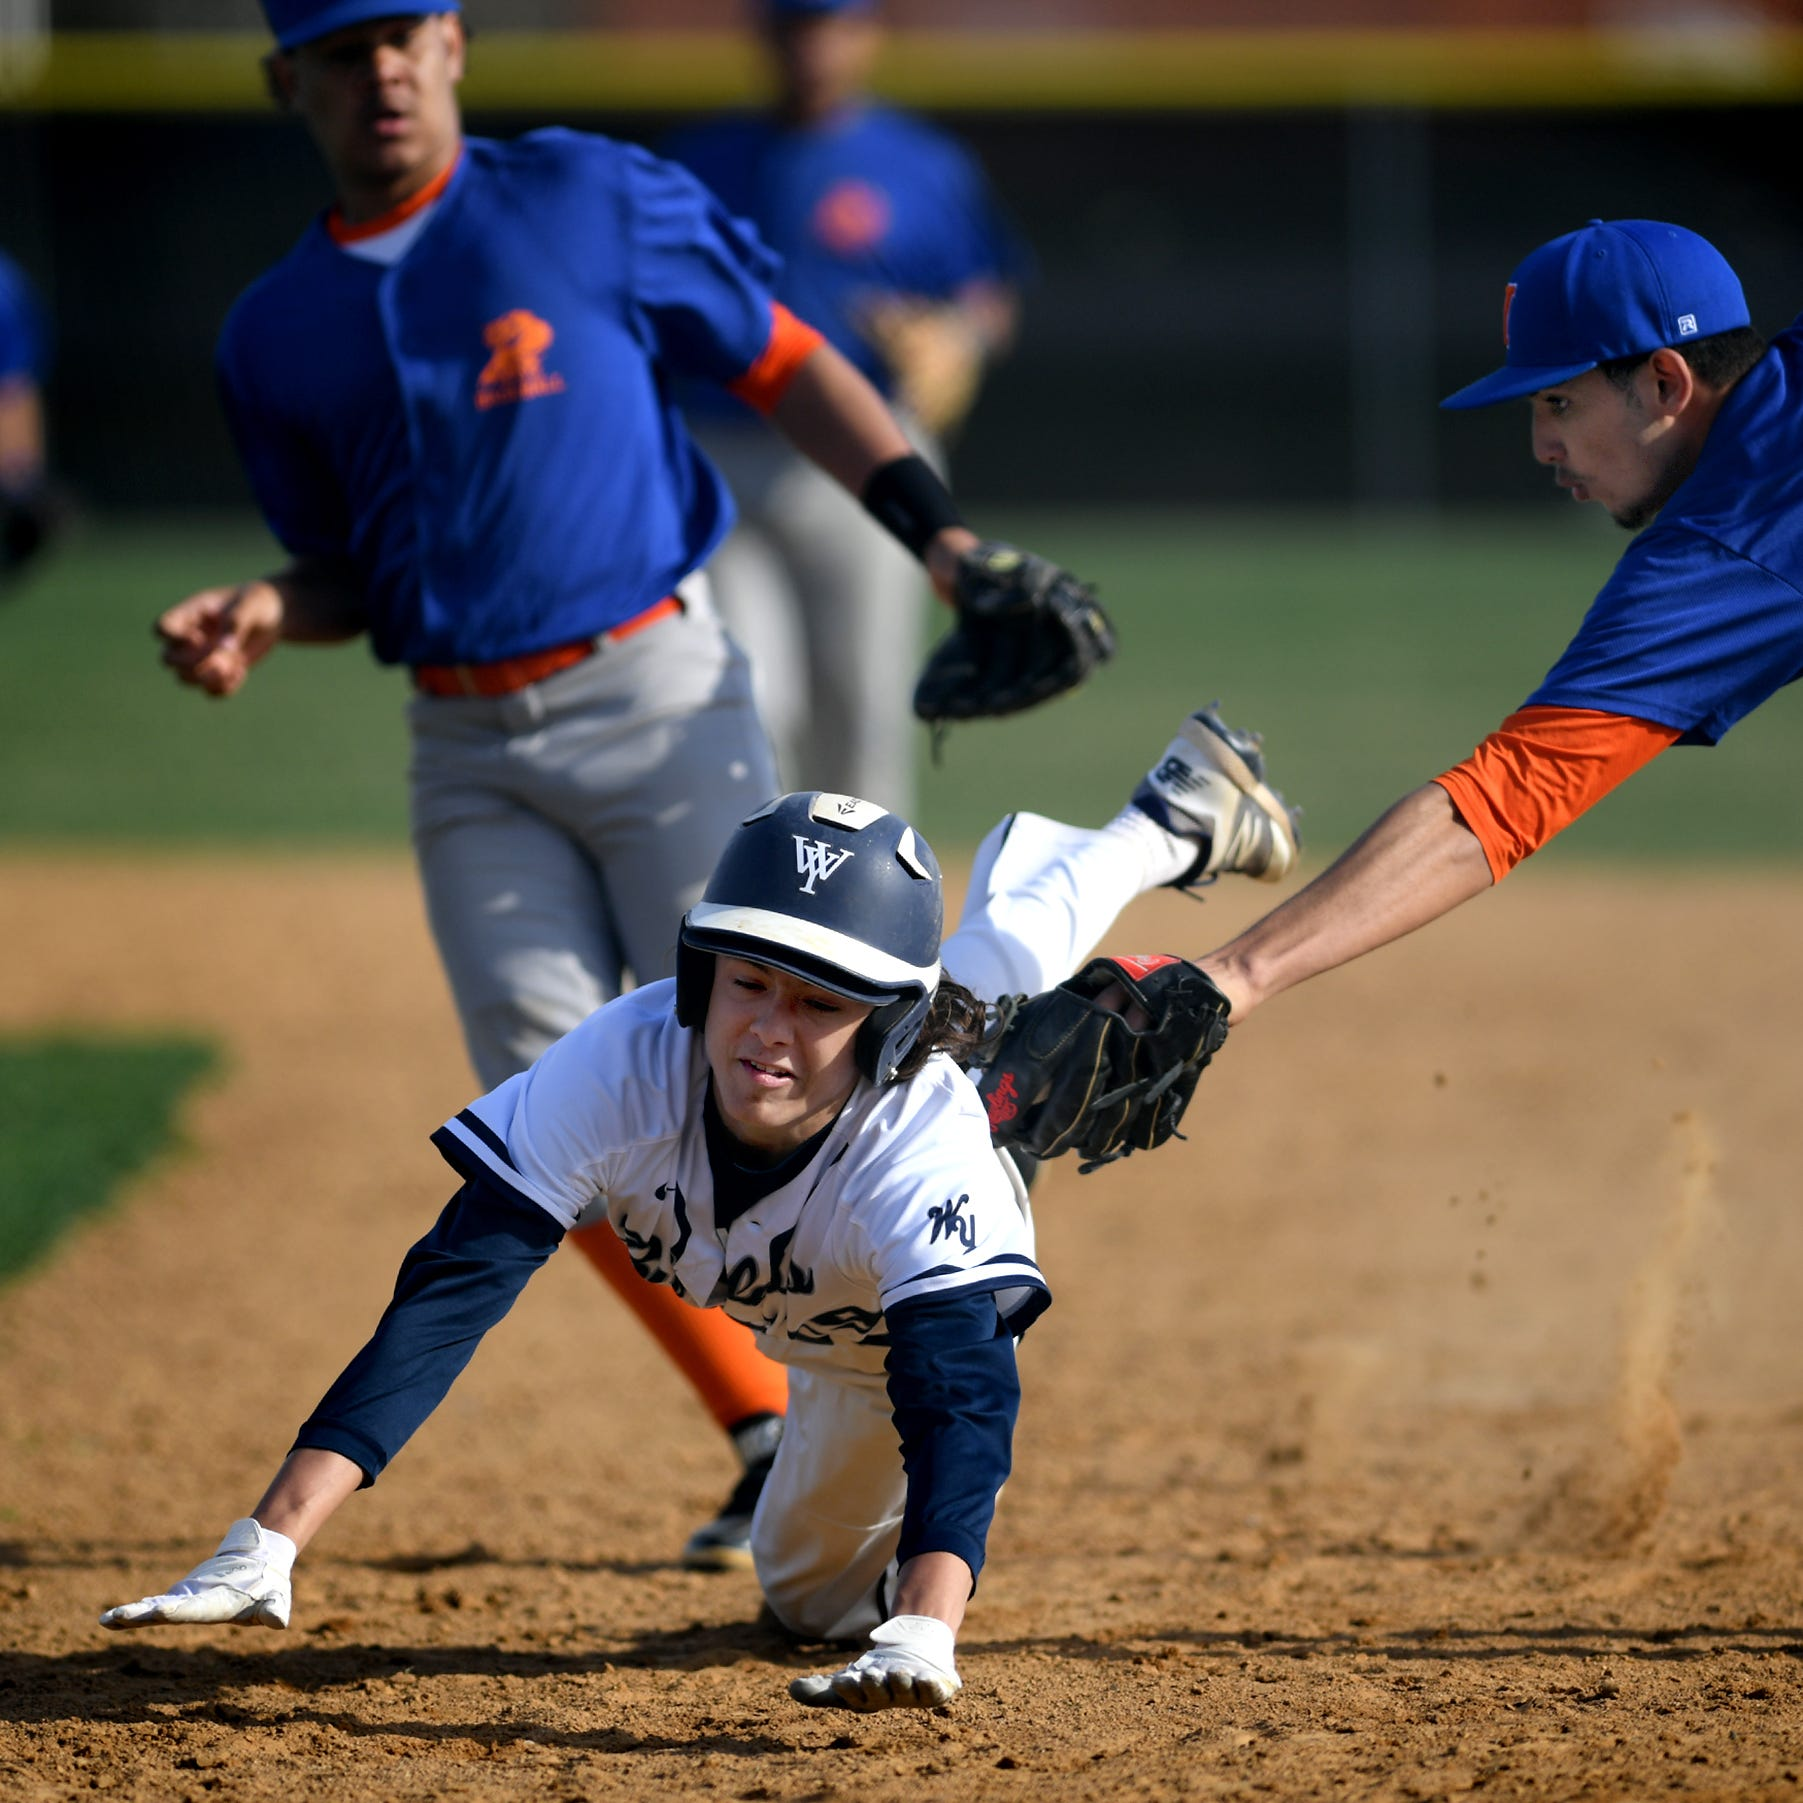 PREP ROUNDUP, WEDNESDAY, APRIL 10: Young West York baseball team sitting in first place